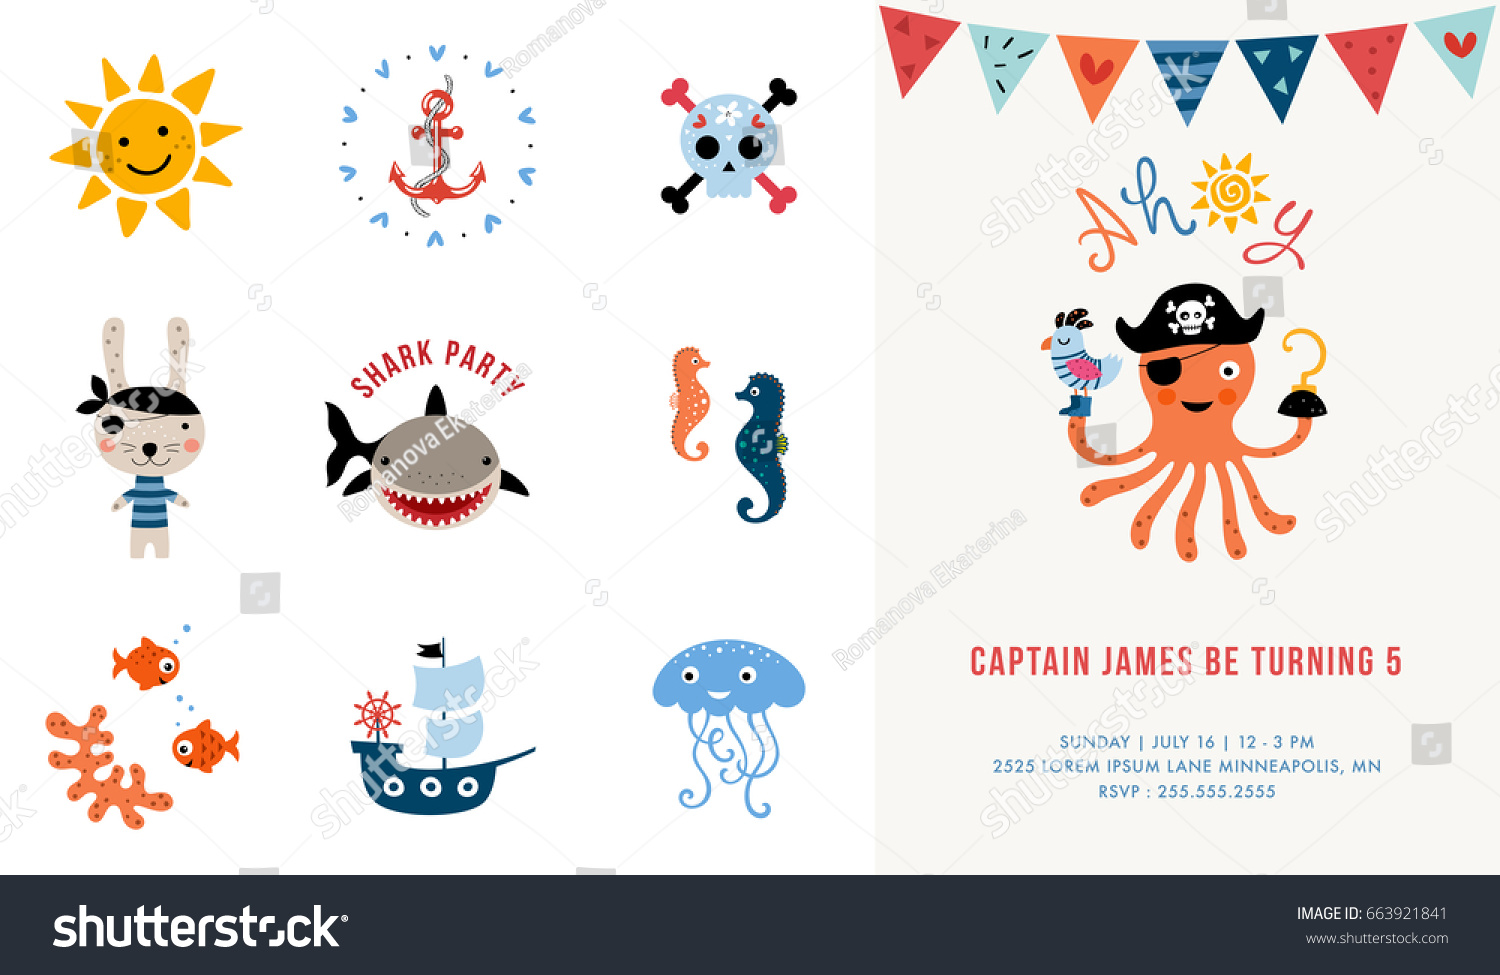 Pirate birthday invitation vector illustration stock vector pirate birthday invitation vector illustration stopboris Gallery